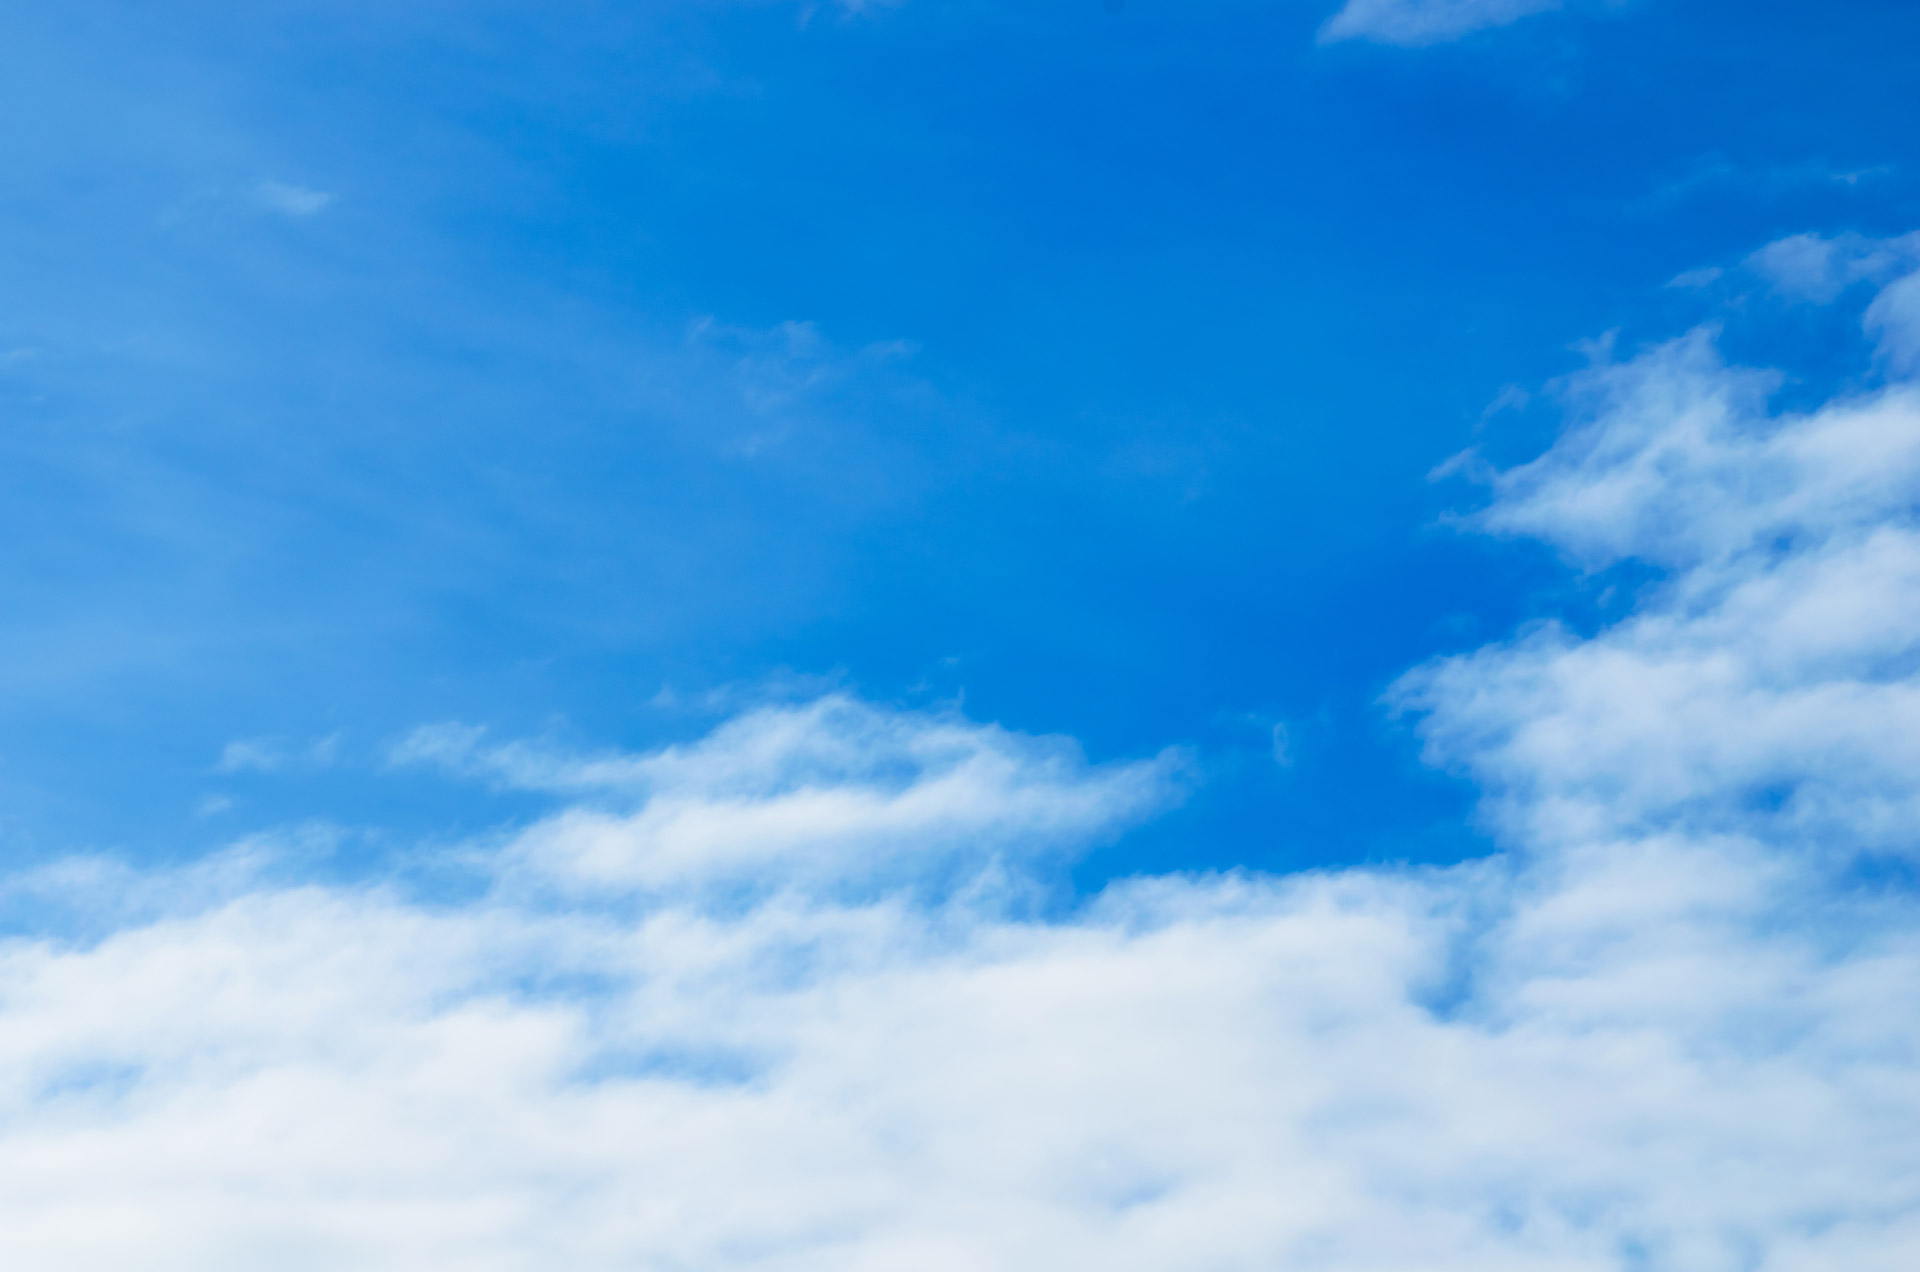 Blue Sky - Background Free Stock Photo - Public Domain Pictures